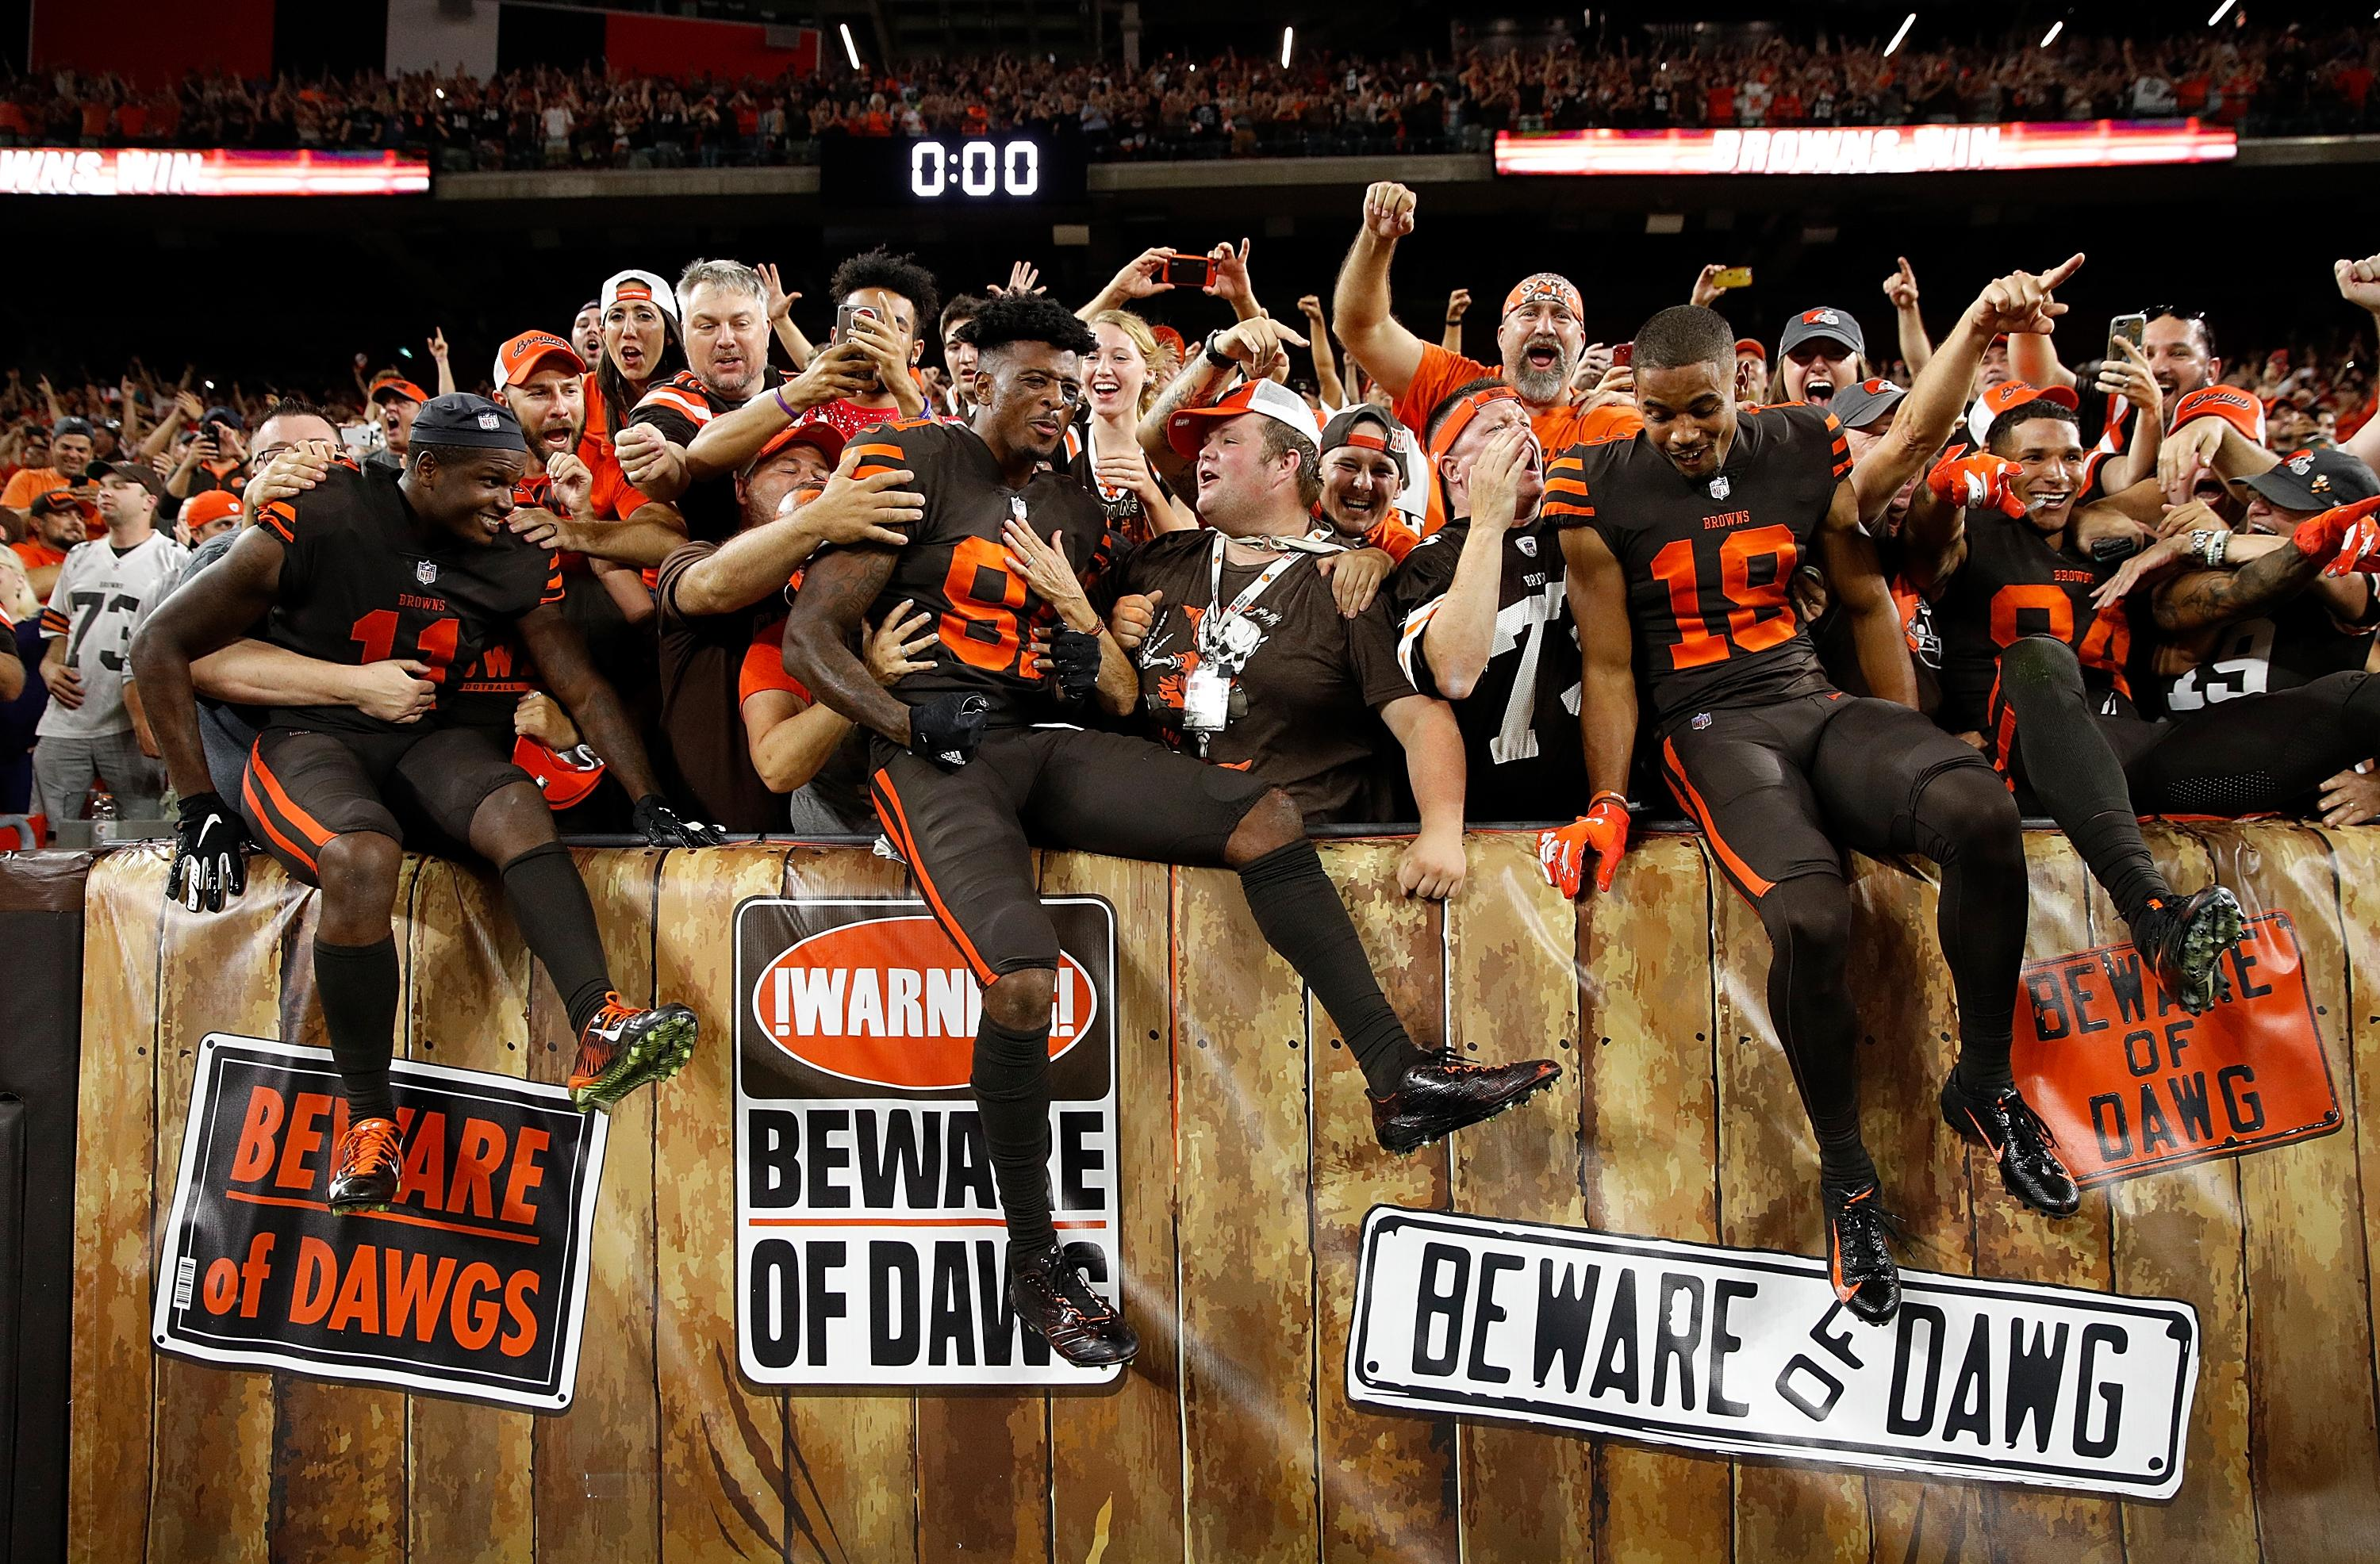 Browns players celebrate in the stands after their victory over the Jets